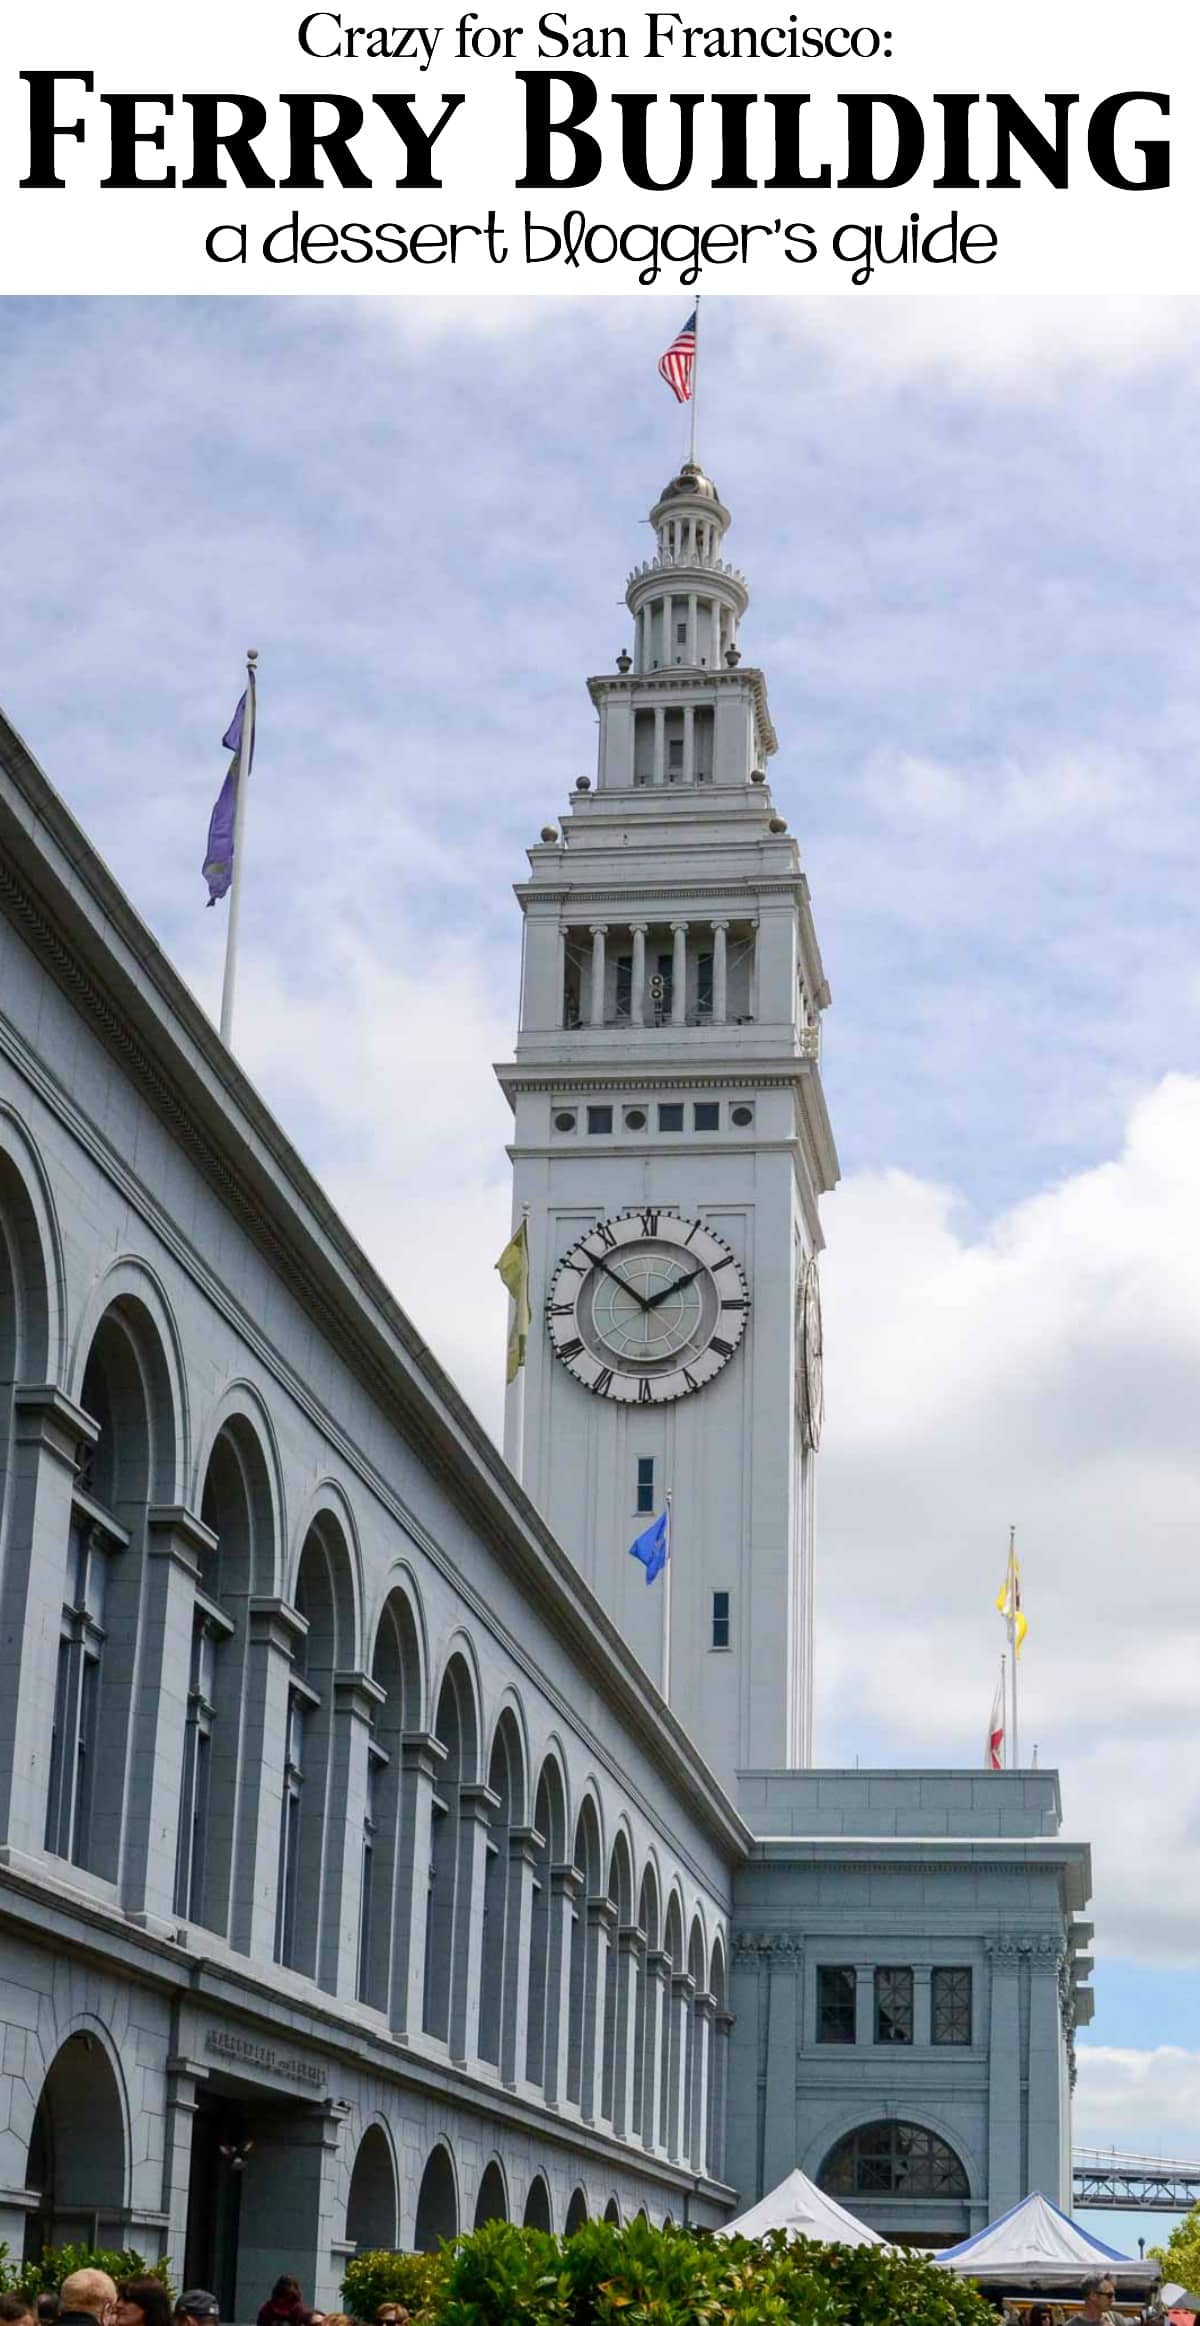 A Food Blogger's Guide to the San Francisco Ferry Building